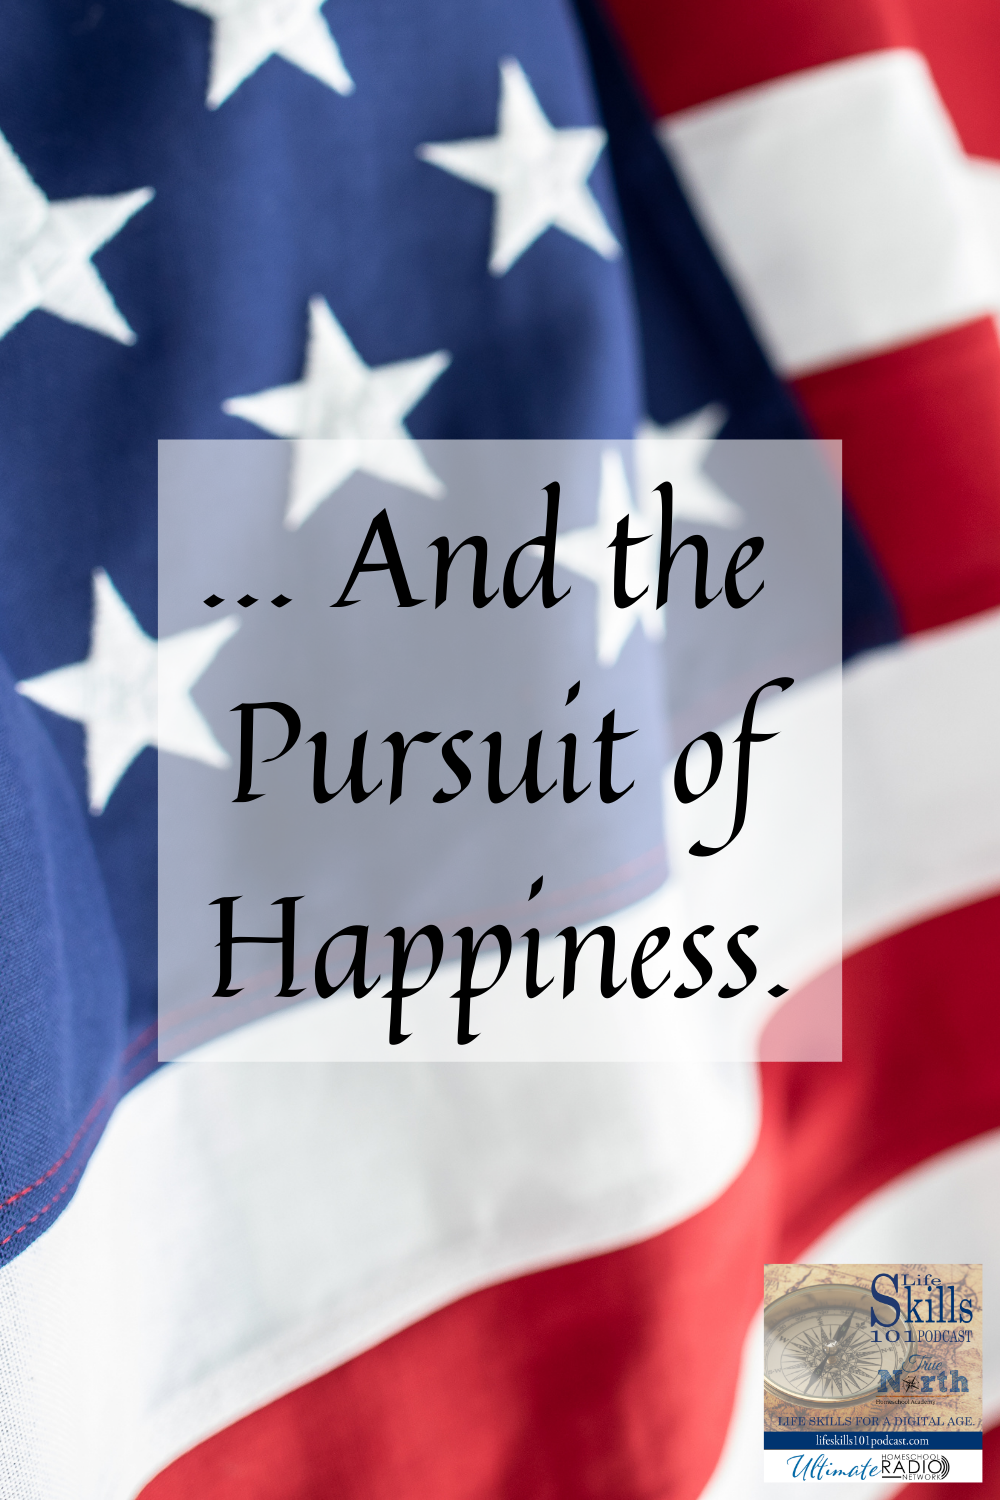 Understanding the Founding Documents of America builds the life skills of good citizenship!